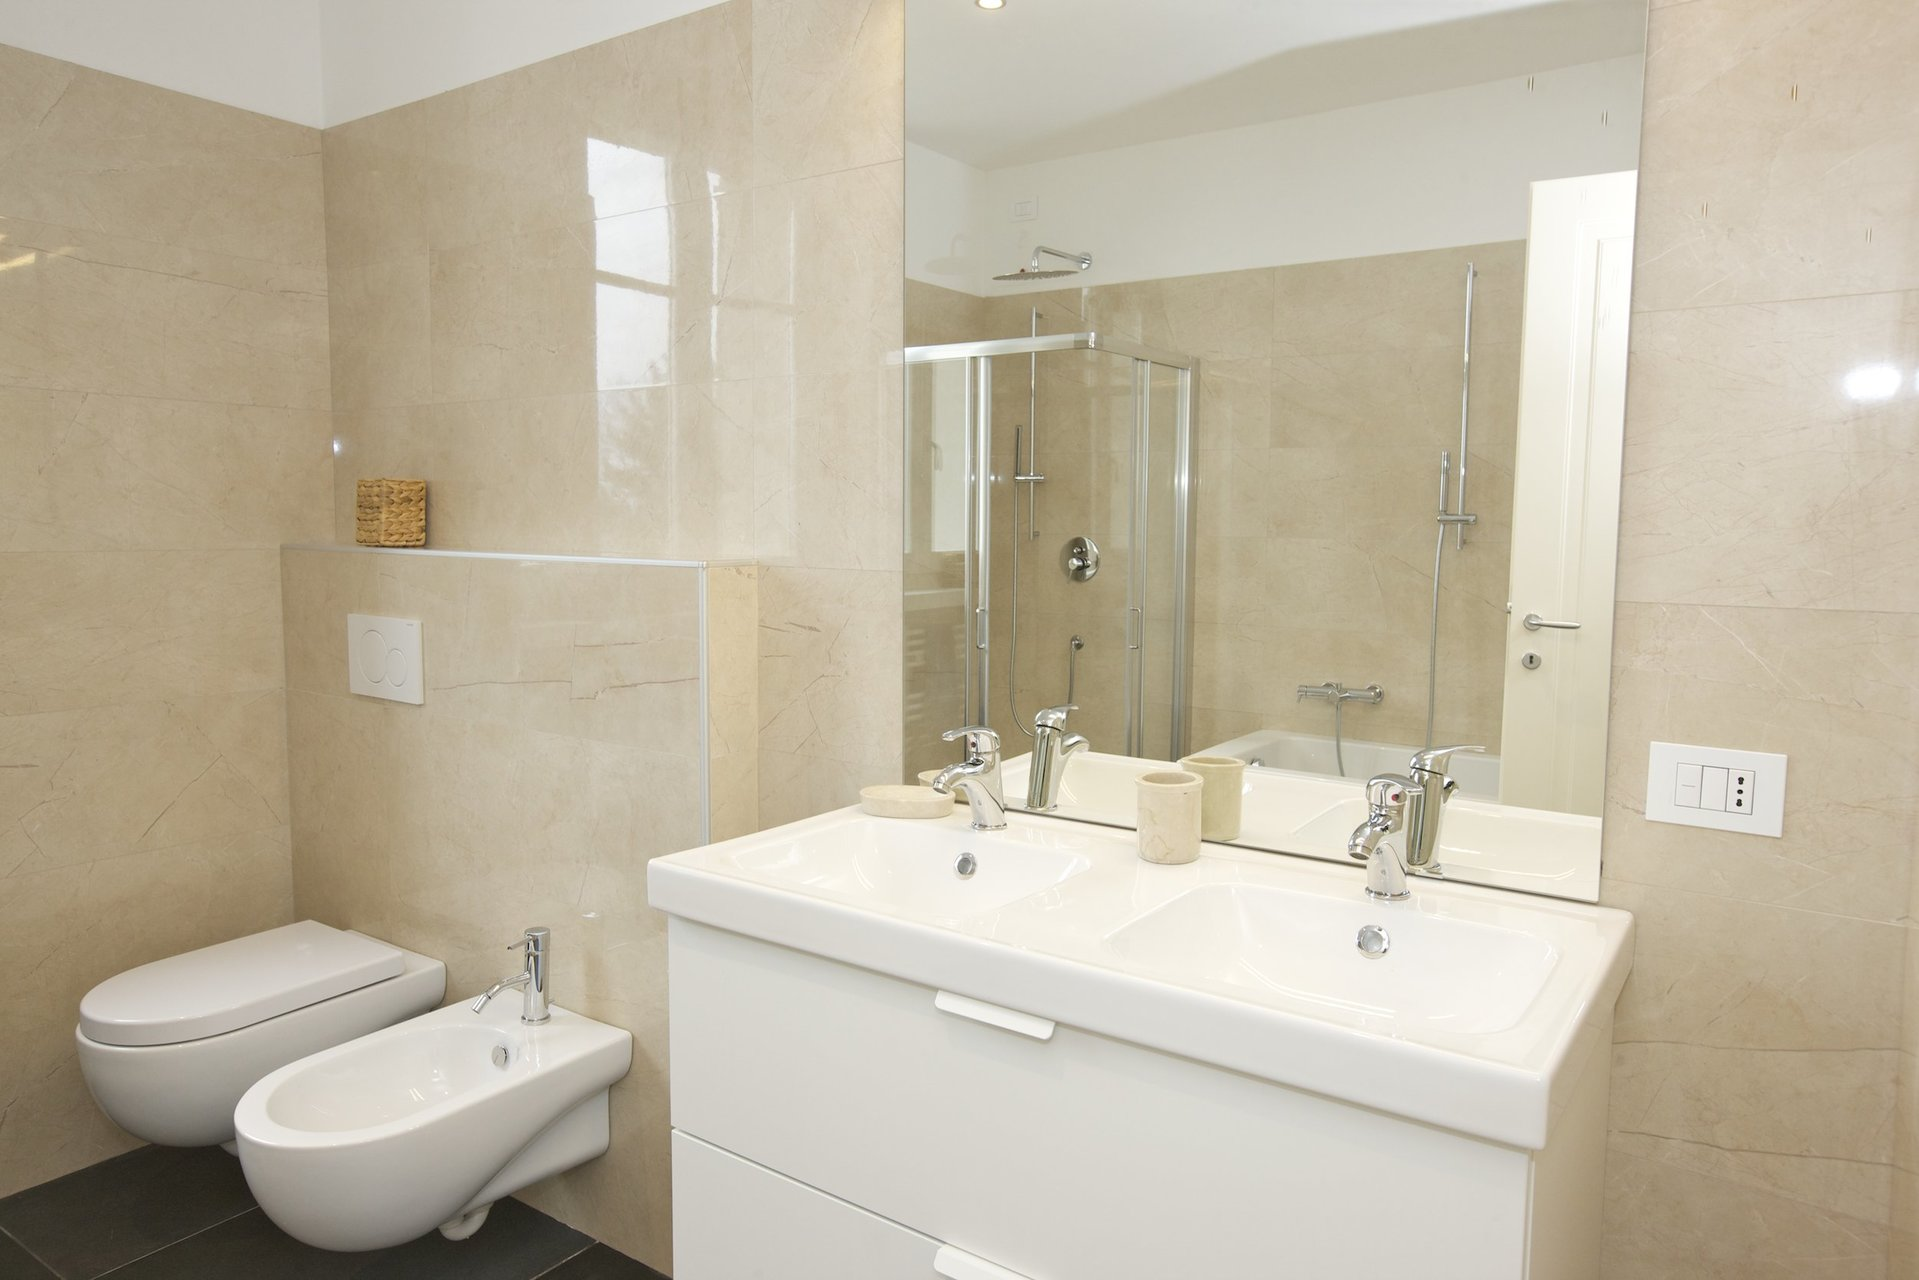 Luxury new villa for sale in Verbania - bathroom with shower